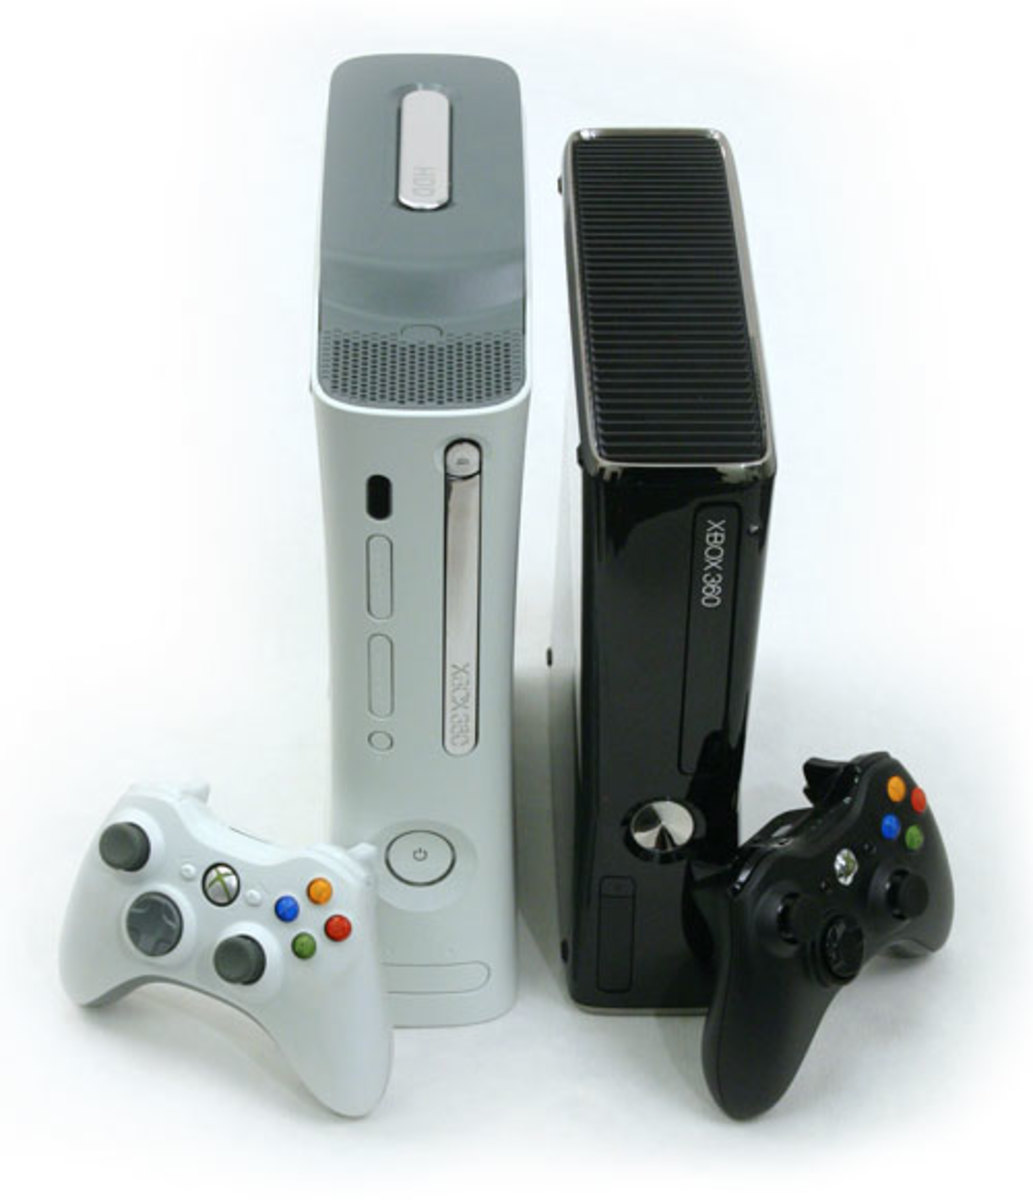 Try positioning your Xbox 360 horizontally and not vertically to see if that resolves your problem.